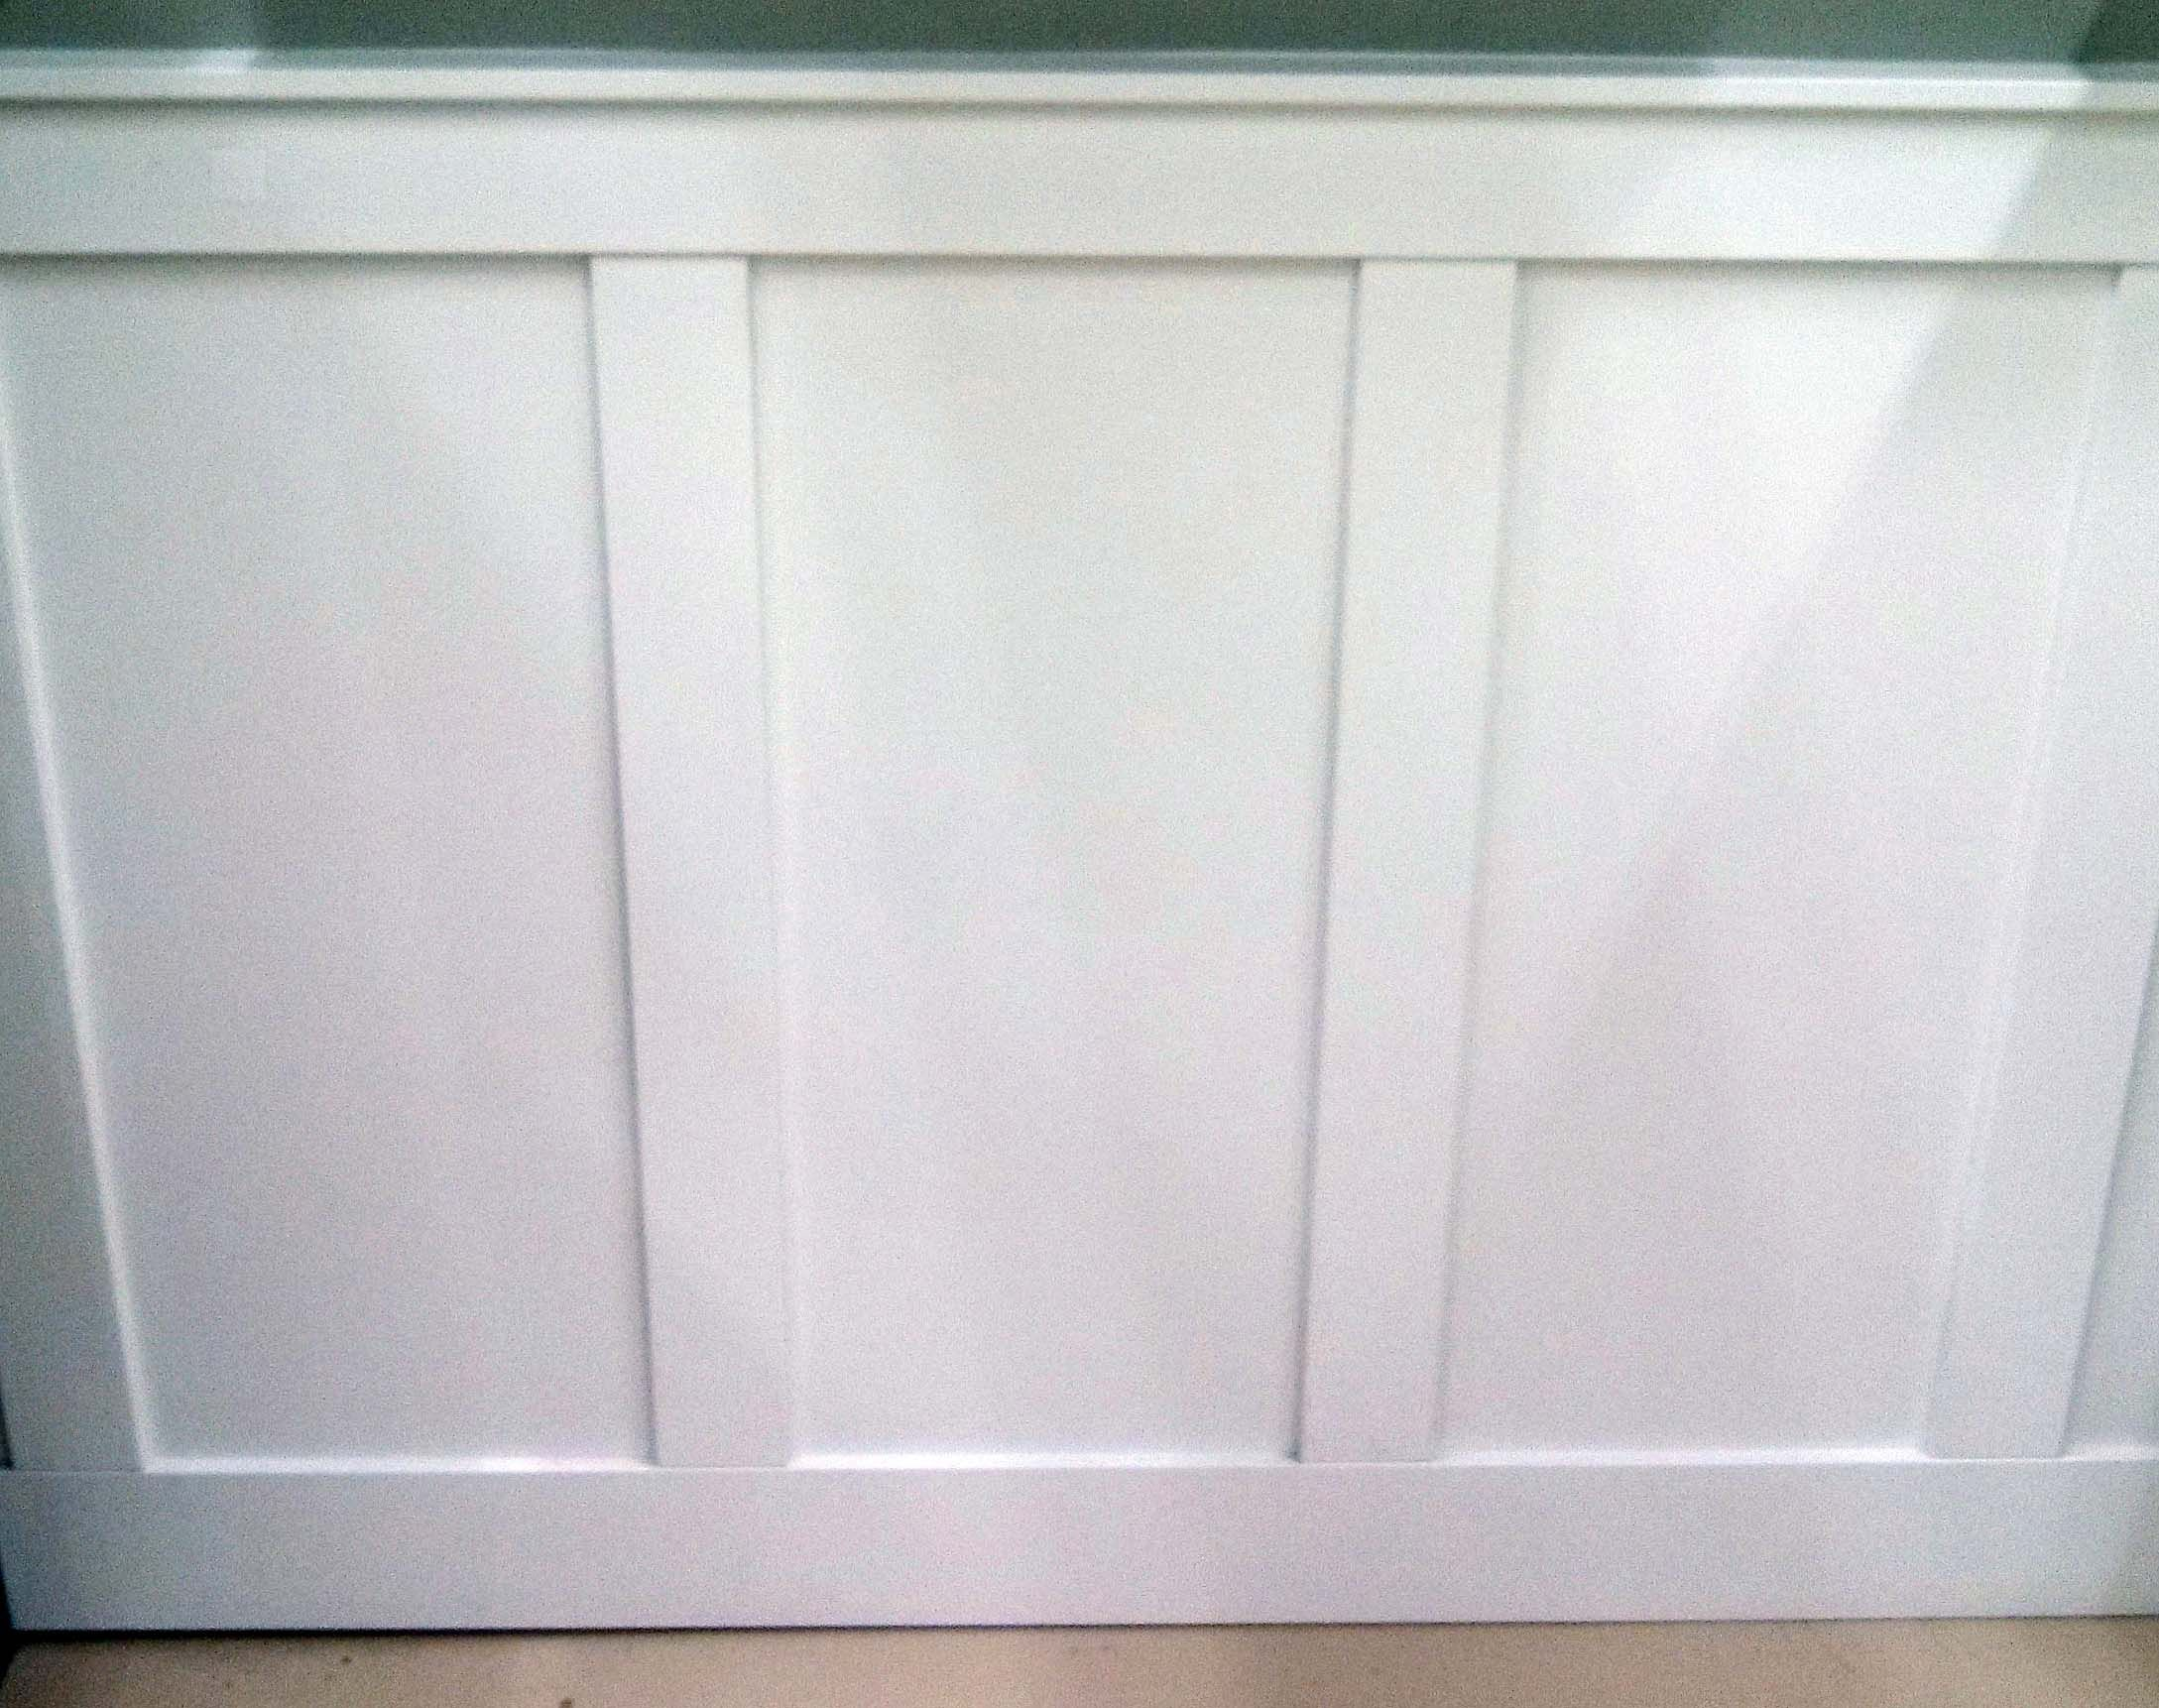 wainscoting styles simple ideas  wainscoting styles board